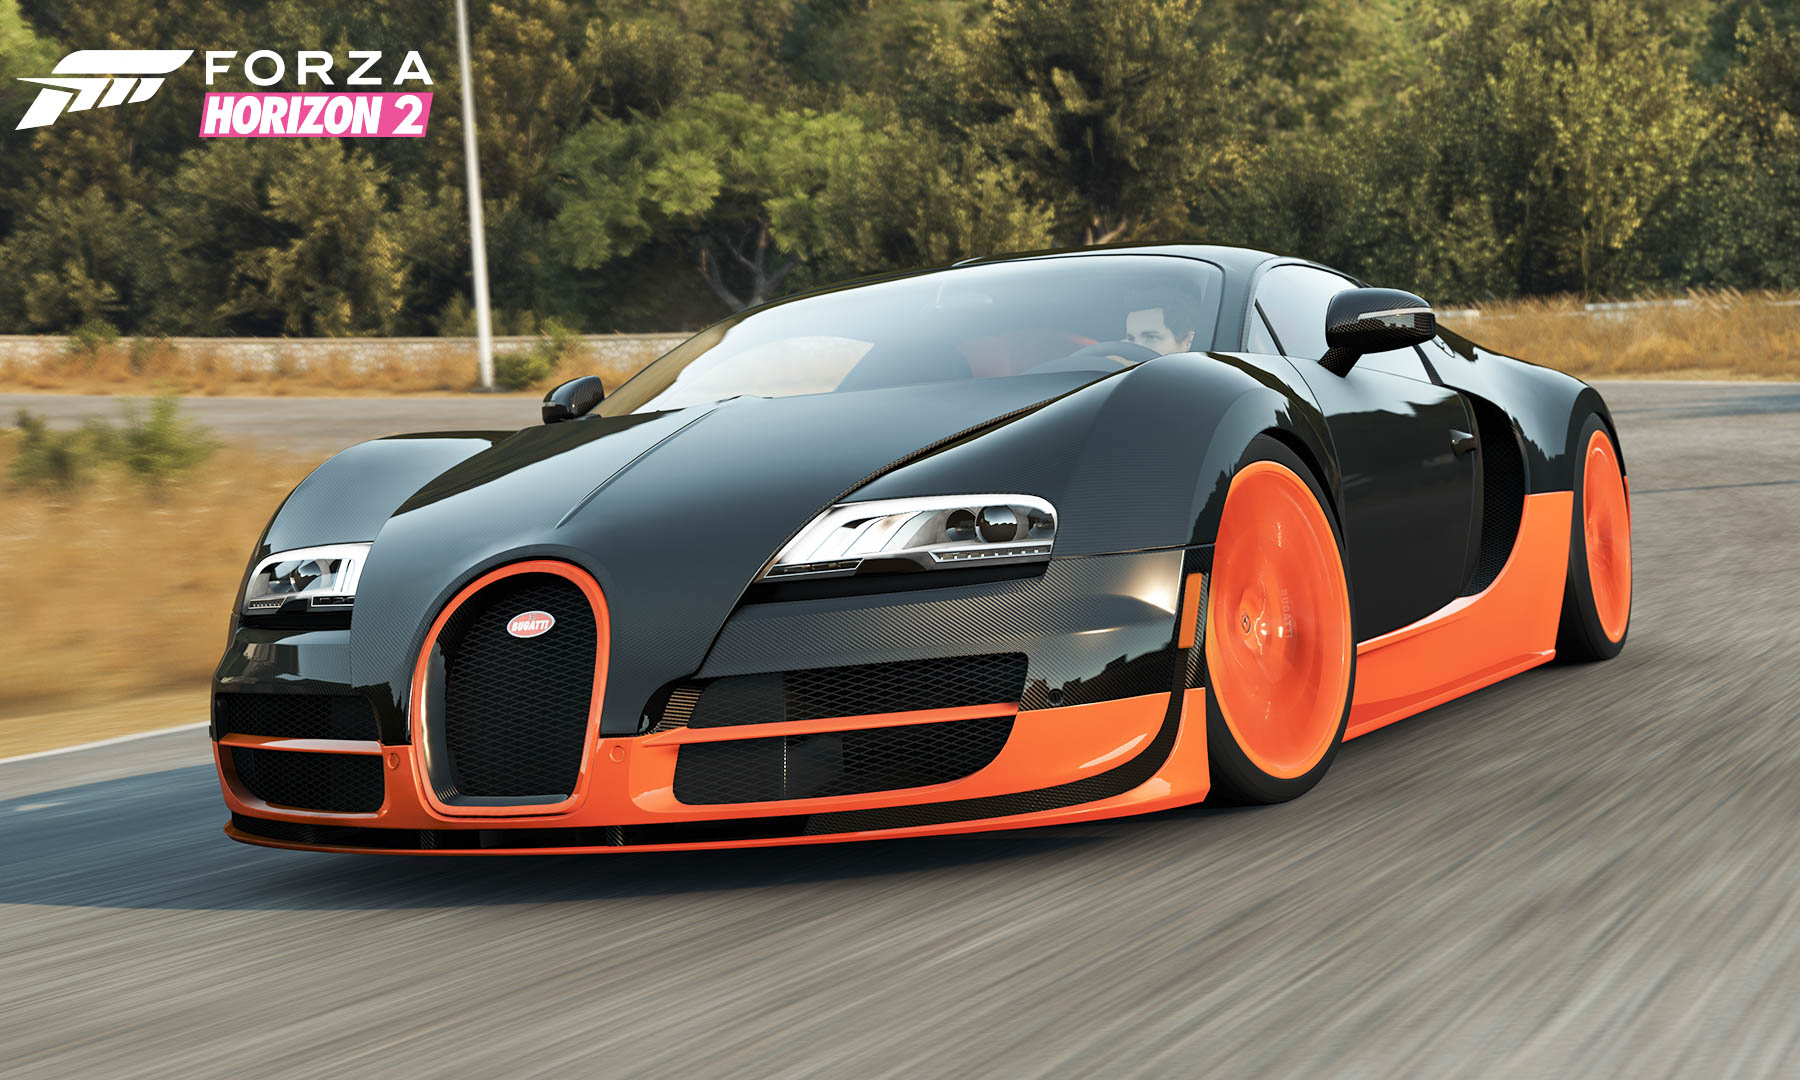 the 25 fastest cars in world pictures specs performance - Super Fast Cars In The World